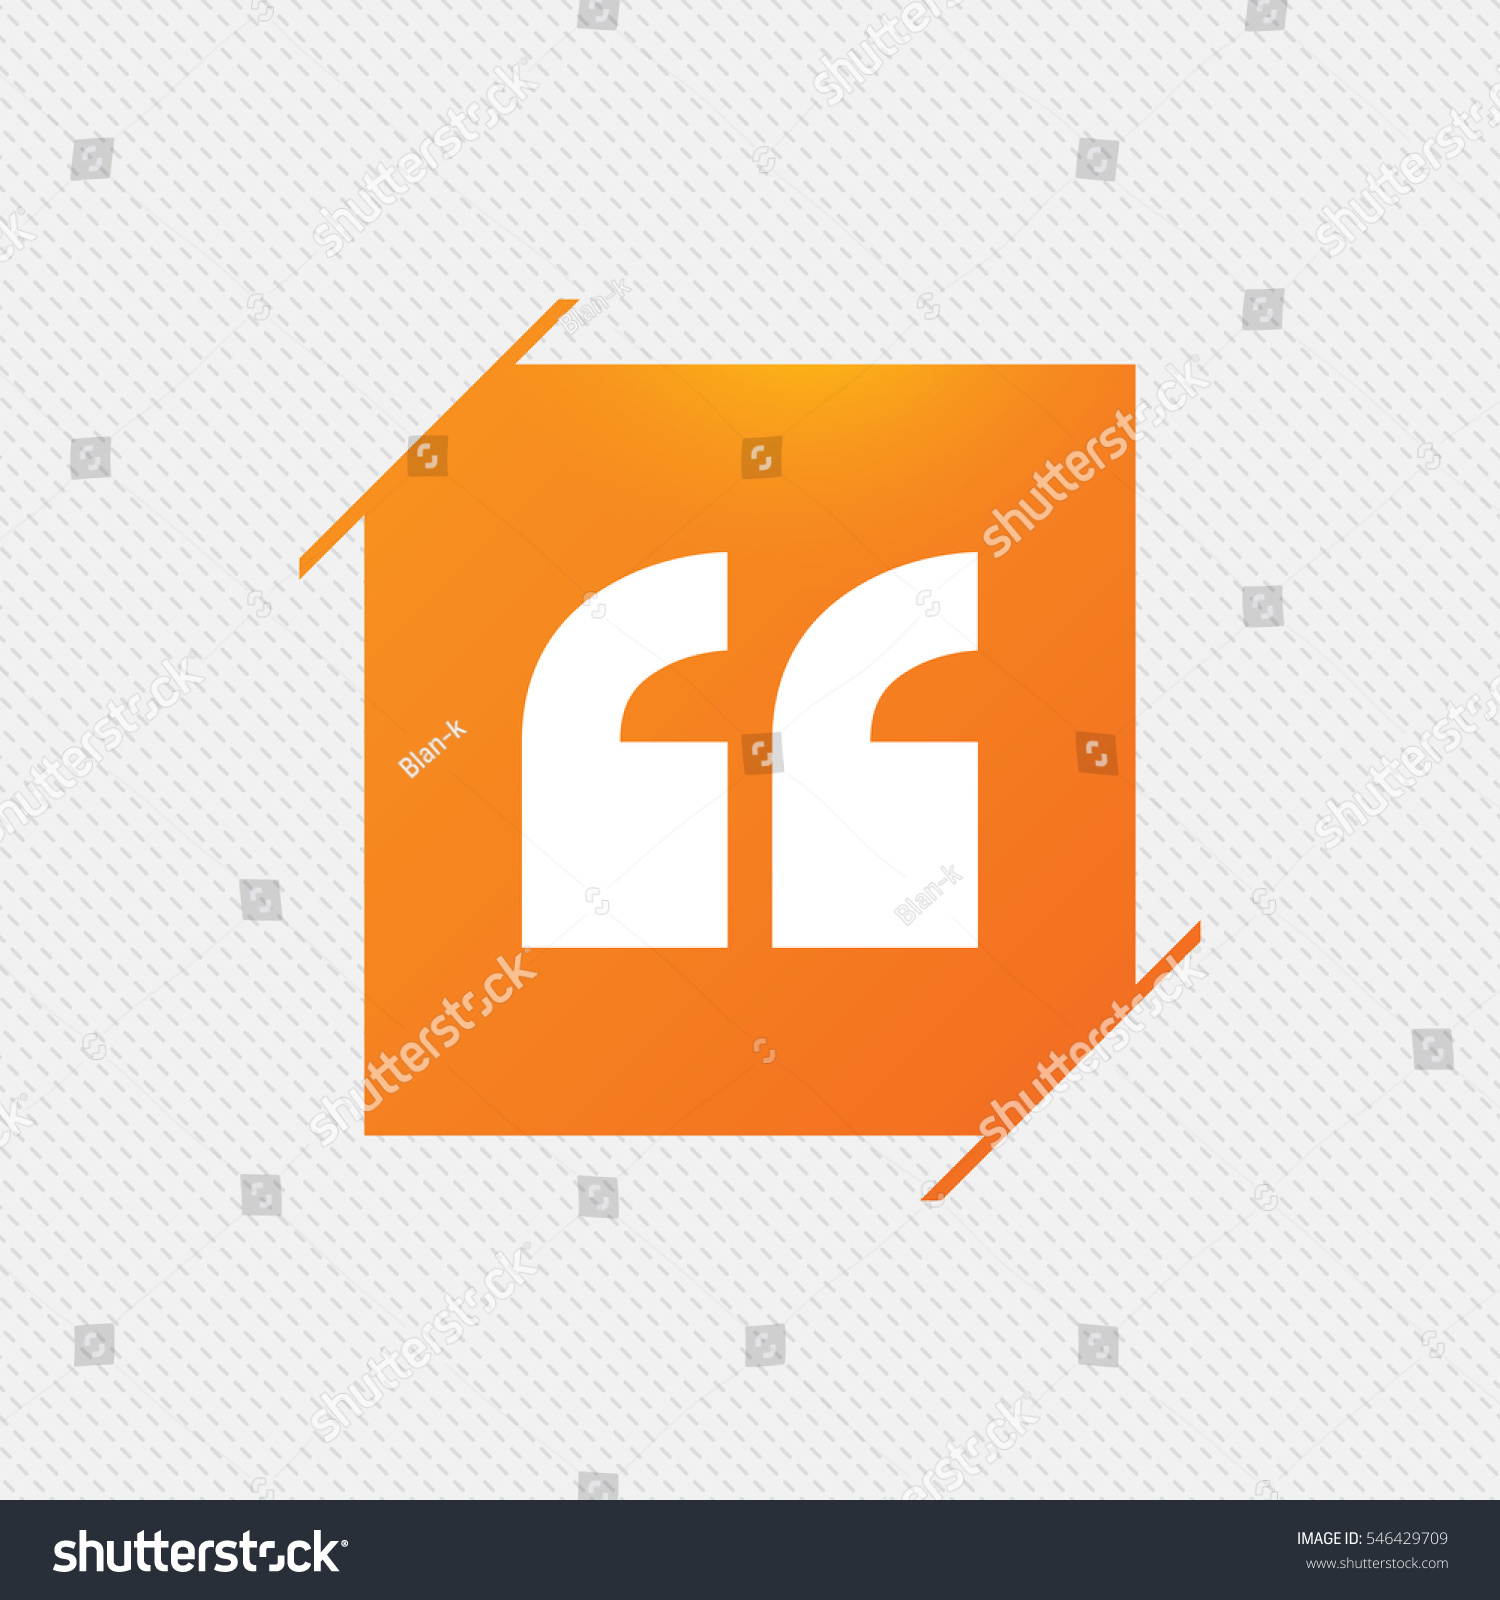 Quote Sign Icon Quotation Mark Symbol Stock Vector 2018 546429709